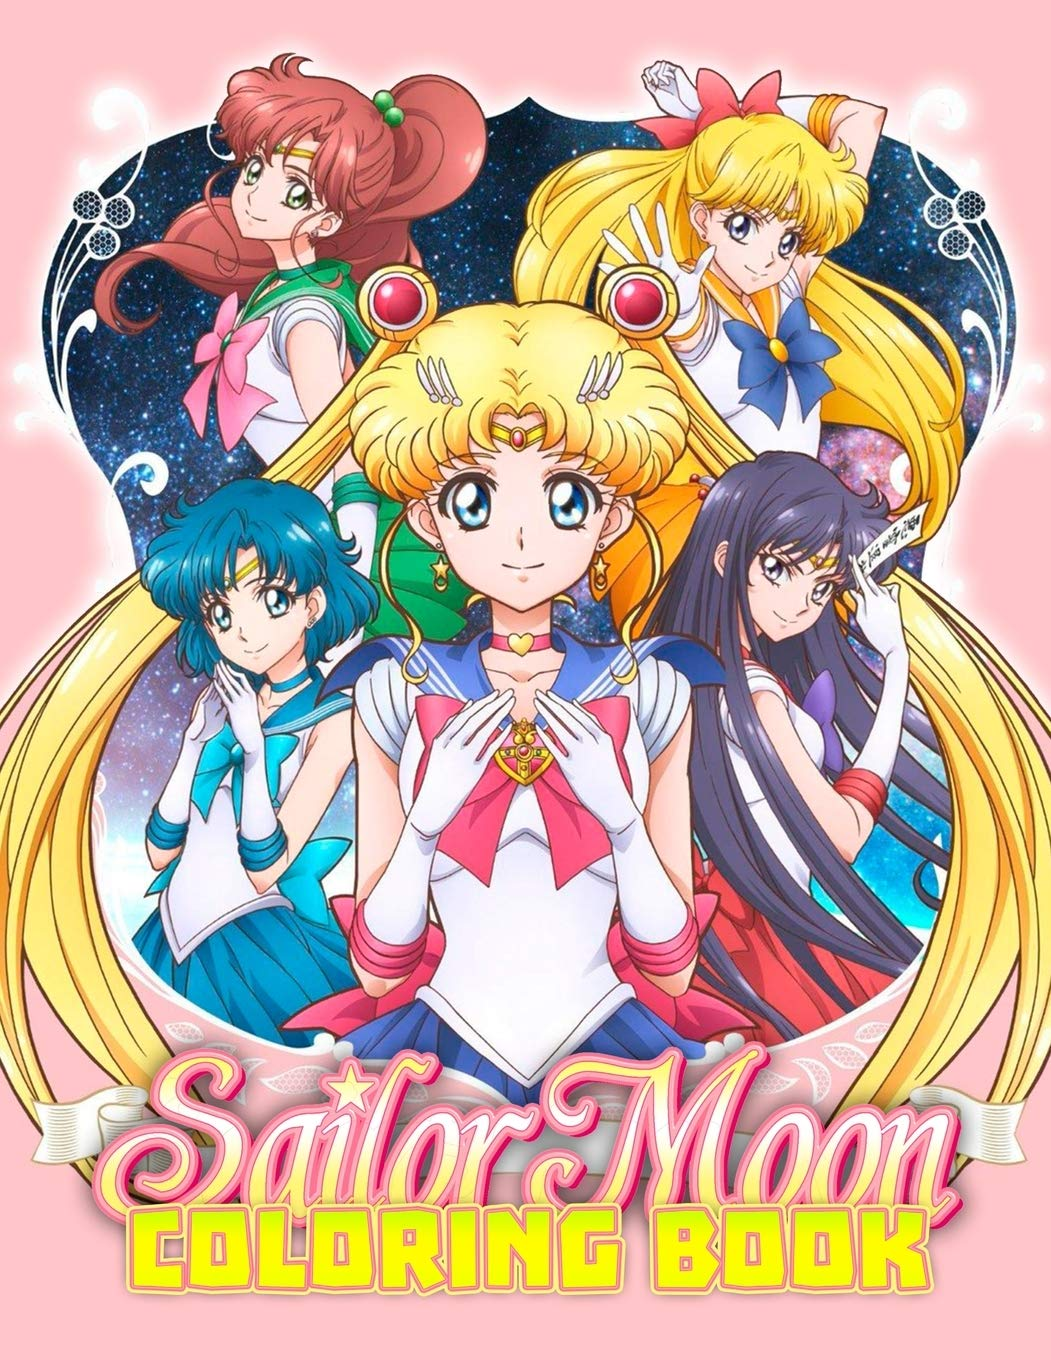 Sailor Moon Coloring Book 35 Awesome Illustrations For Kids Books Exclusive 9798607078959 Books Amazon Ca